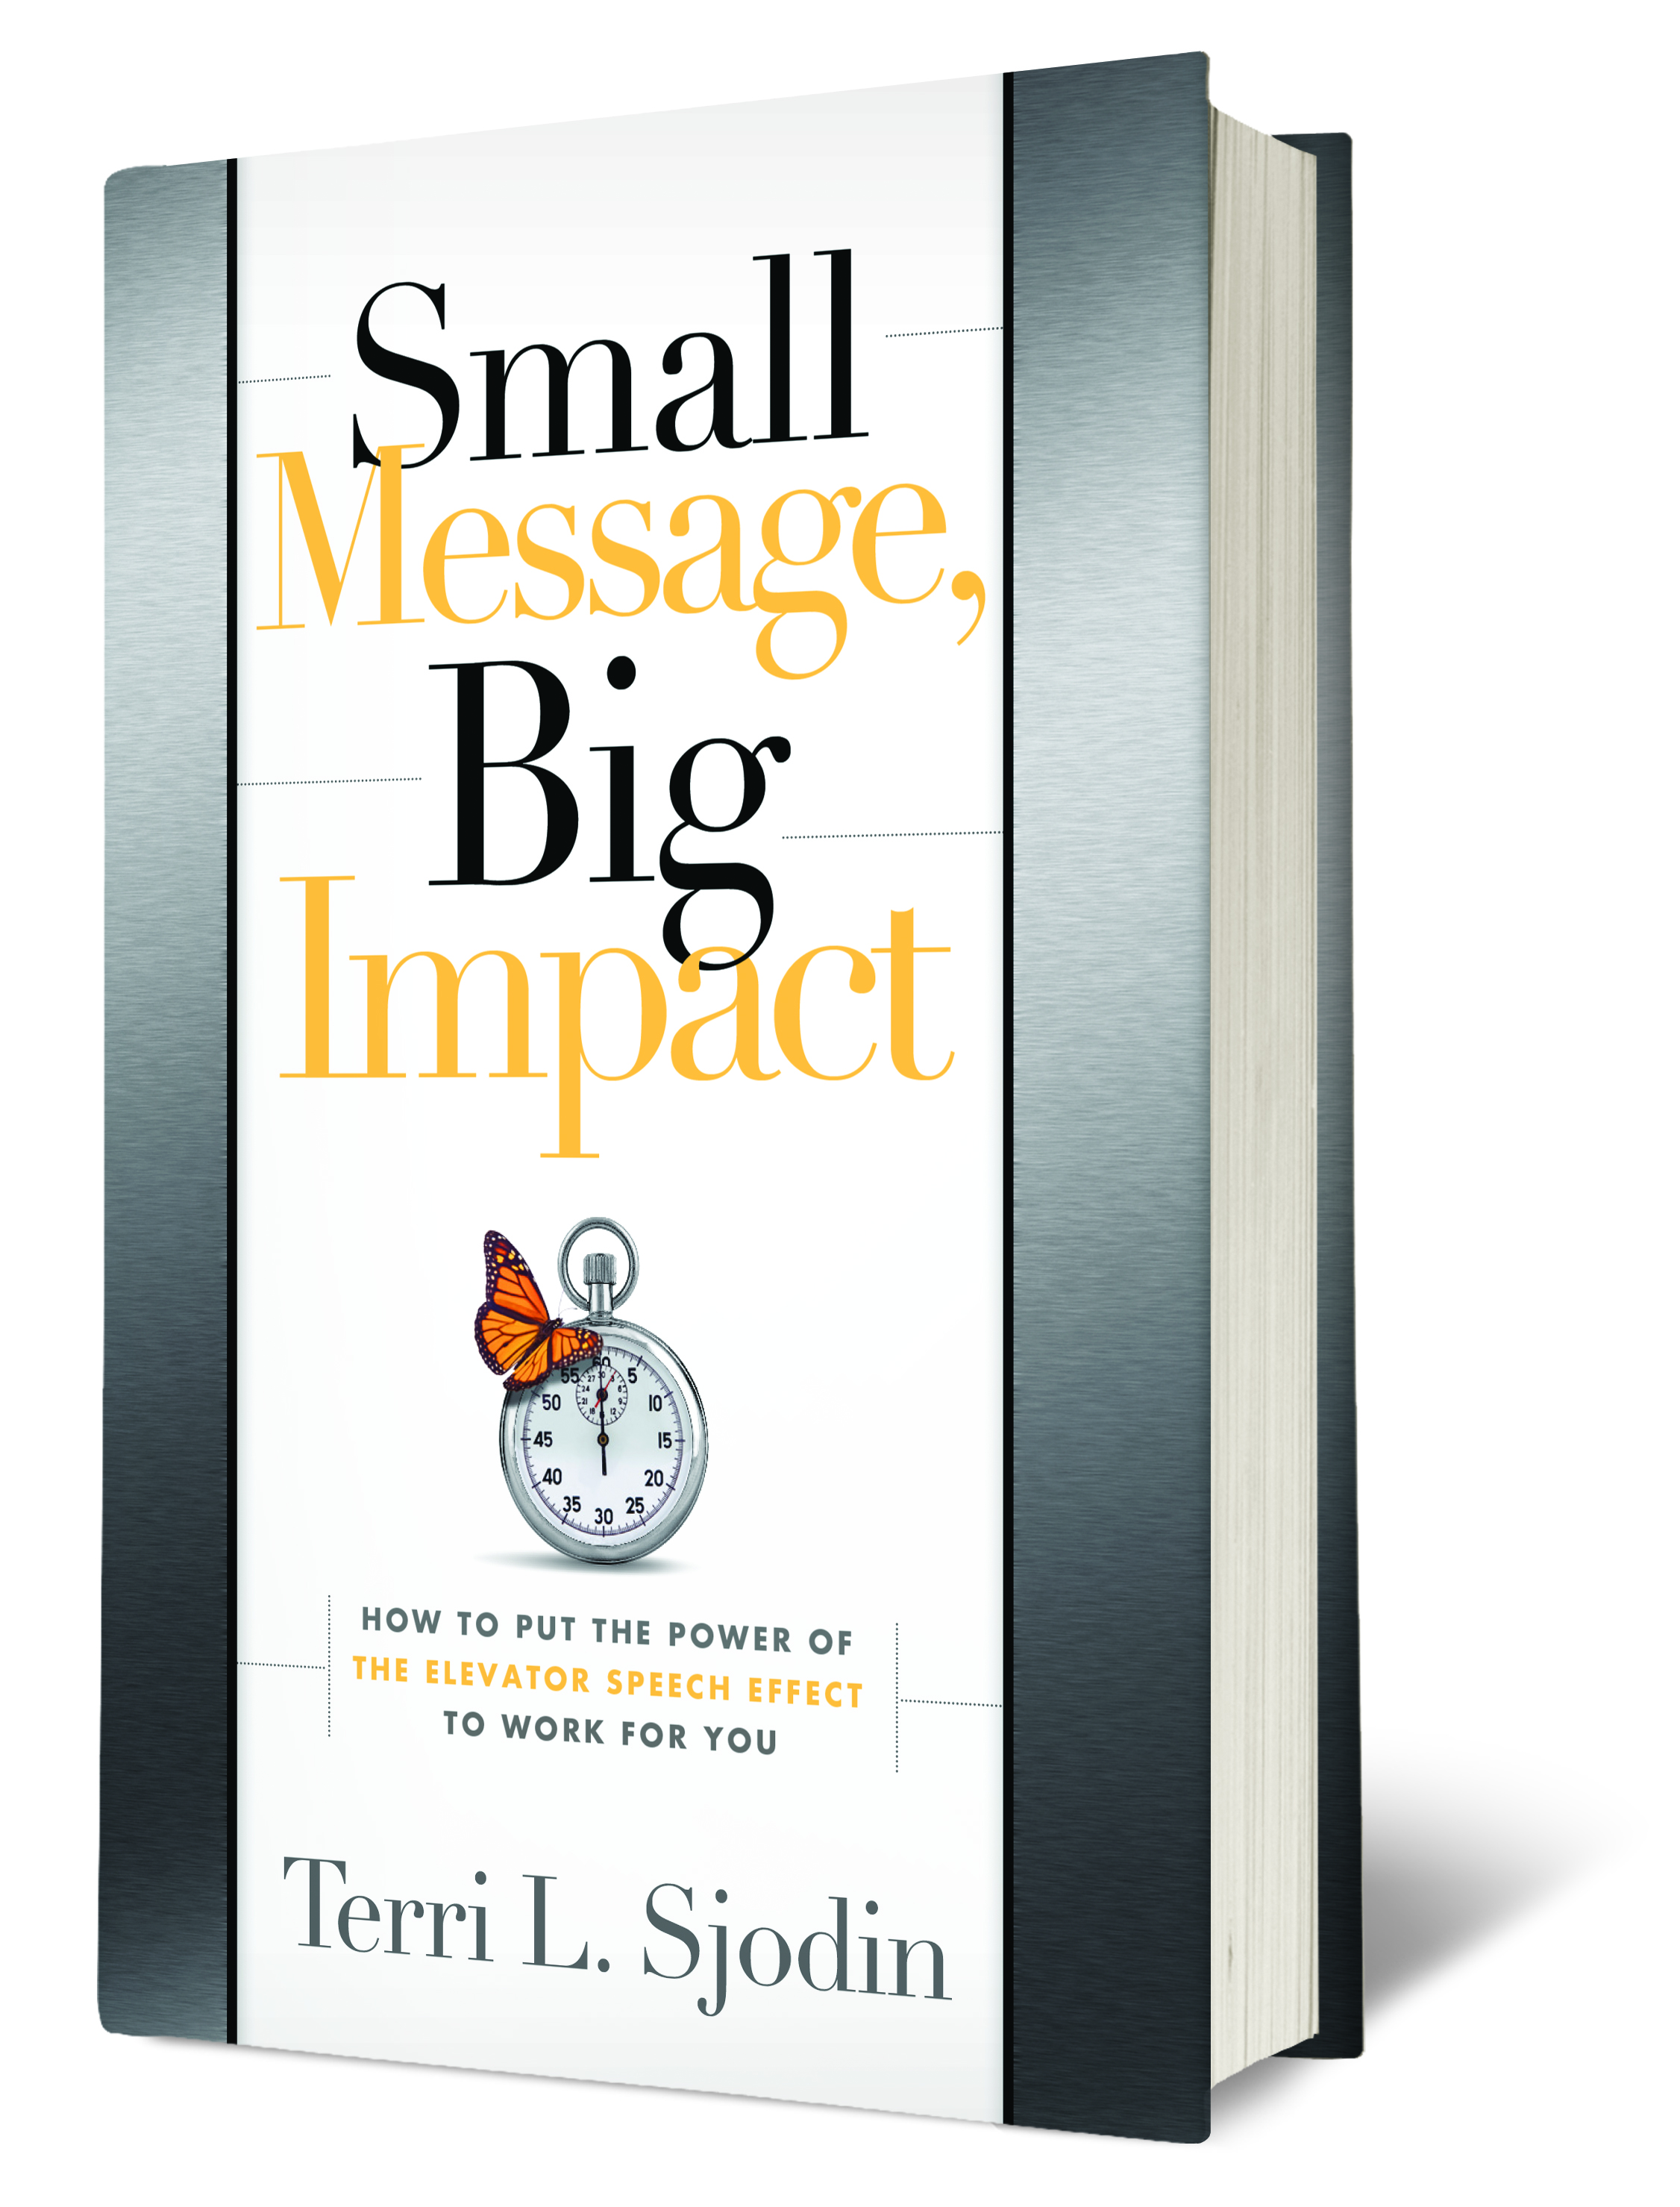 Small Message, Big Impact